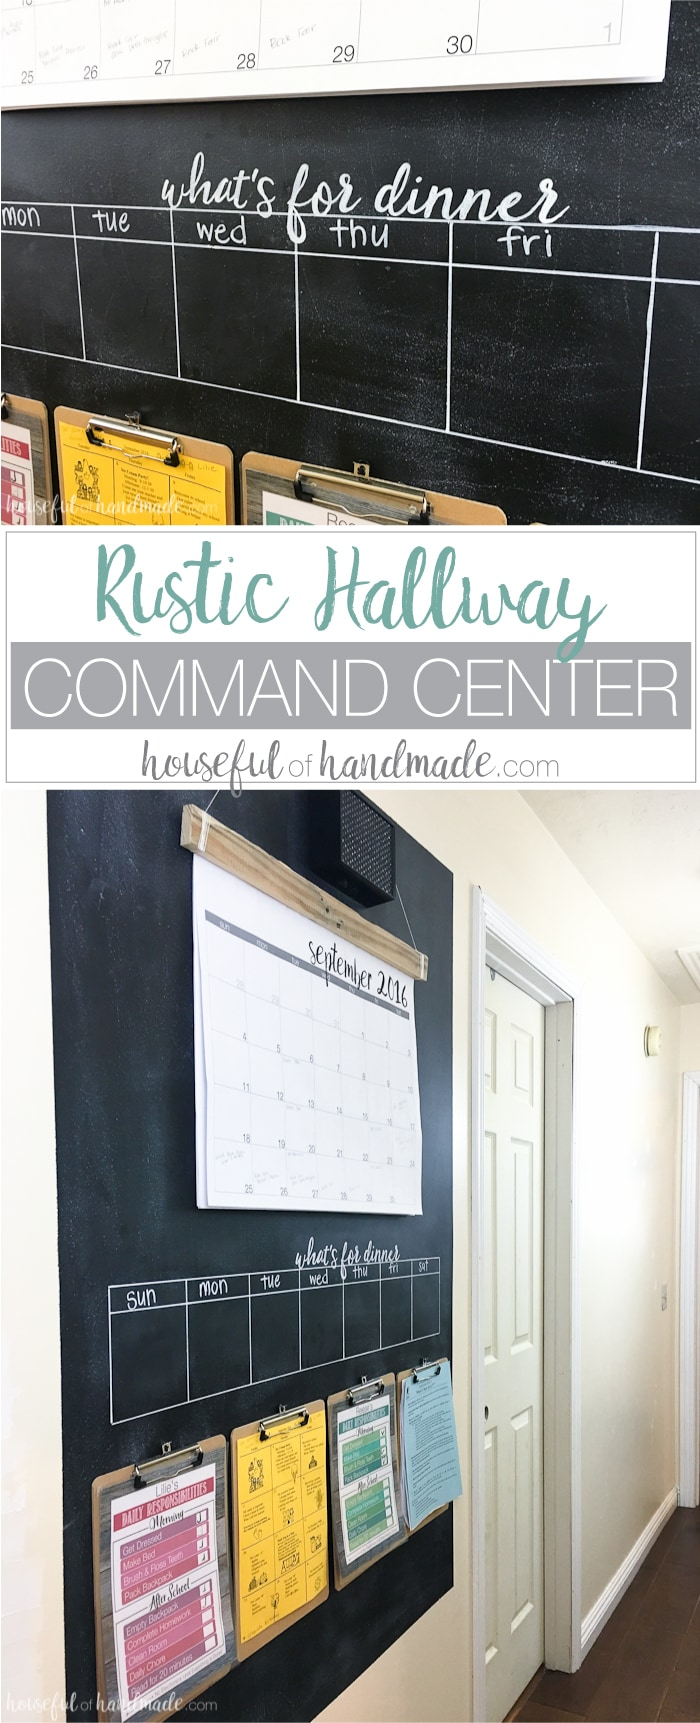 Rustic Hallway Command Center A Houseful Of Handmade